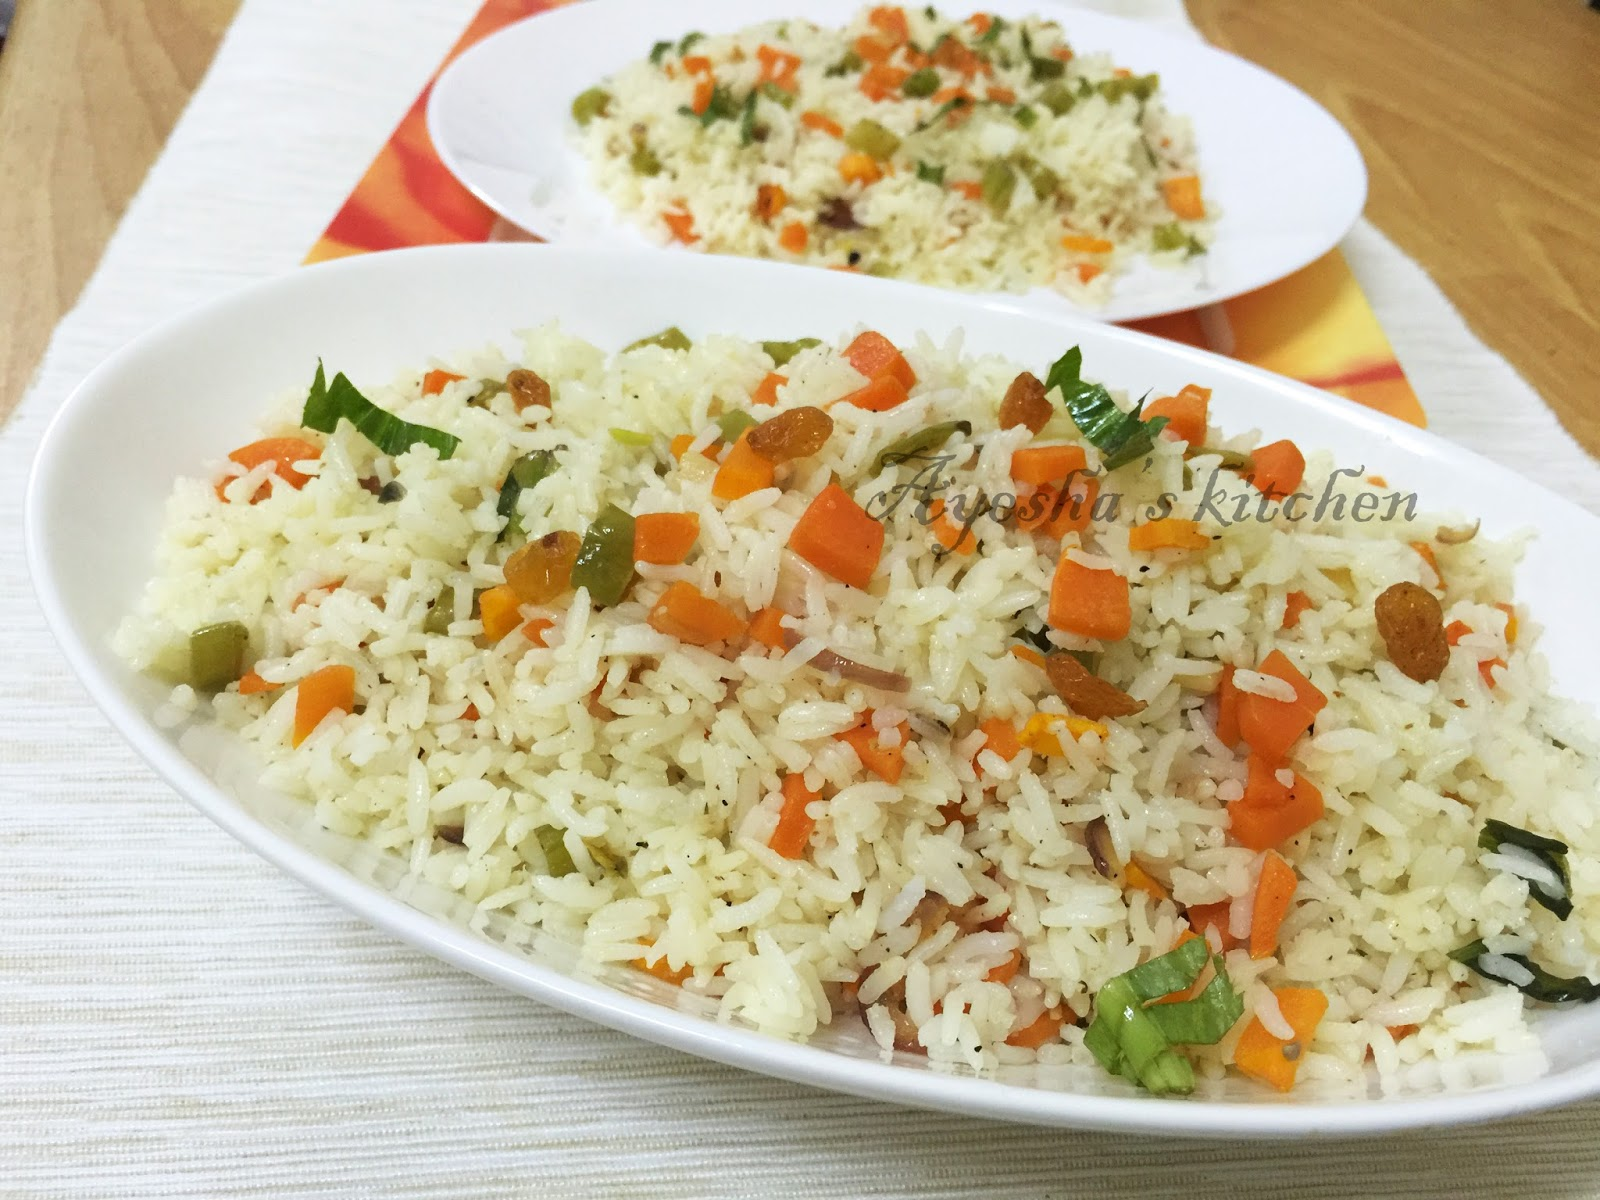 FRIED RICE RECIPE - VEGETABLE FRIED RICE